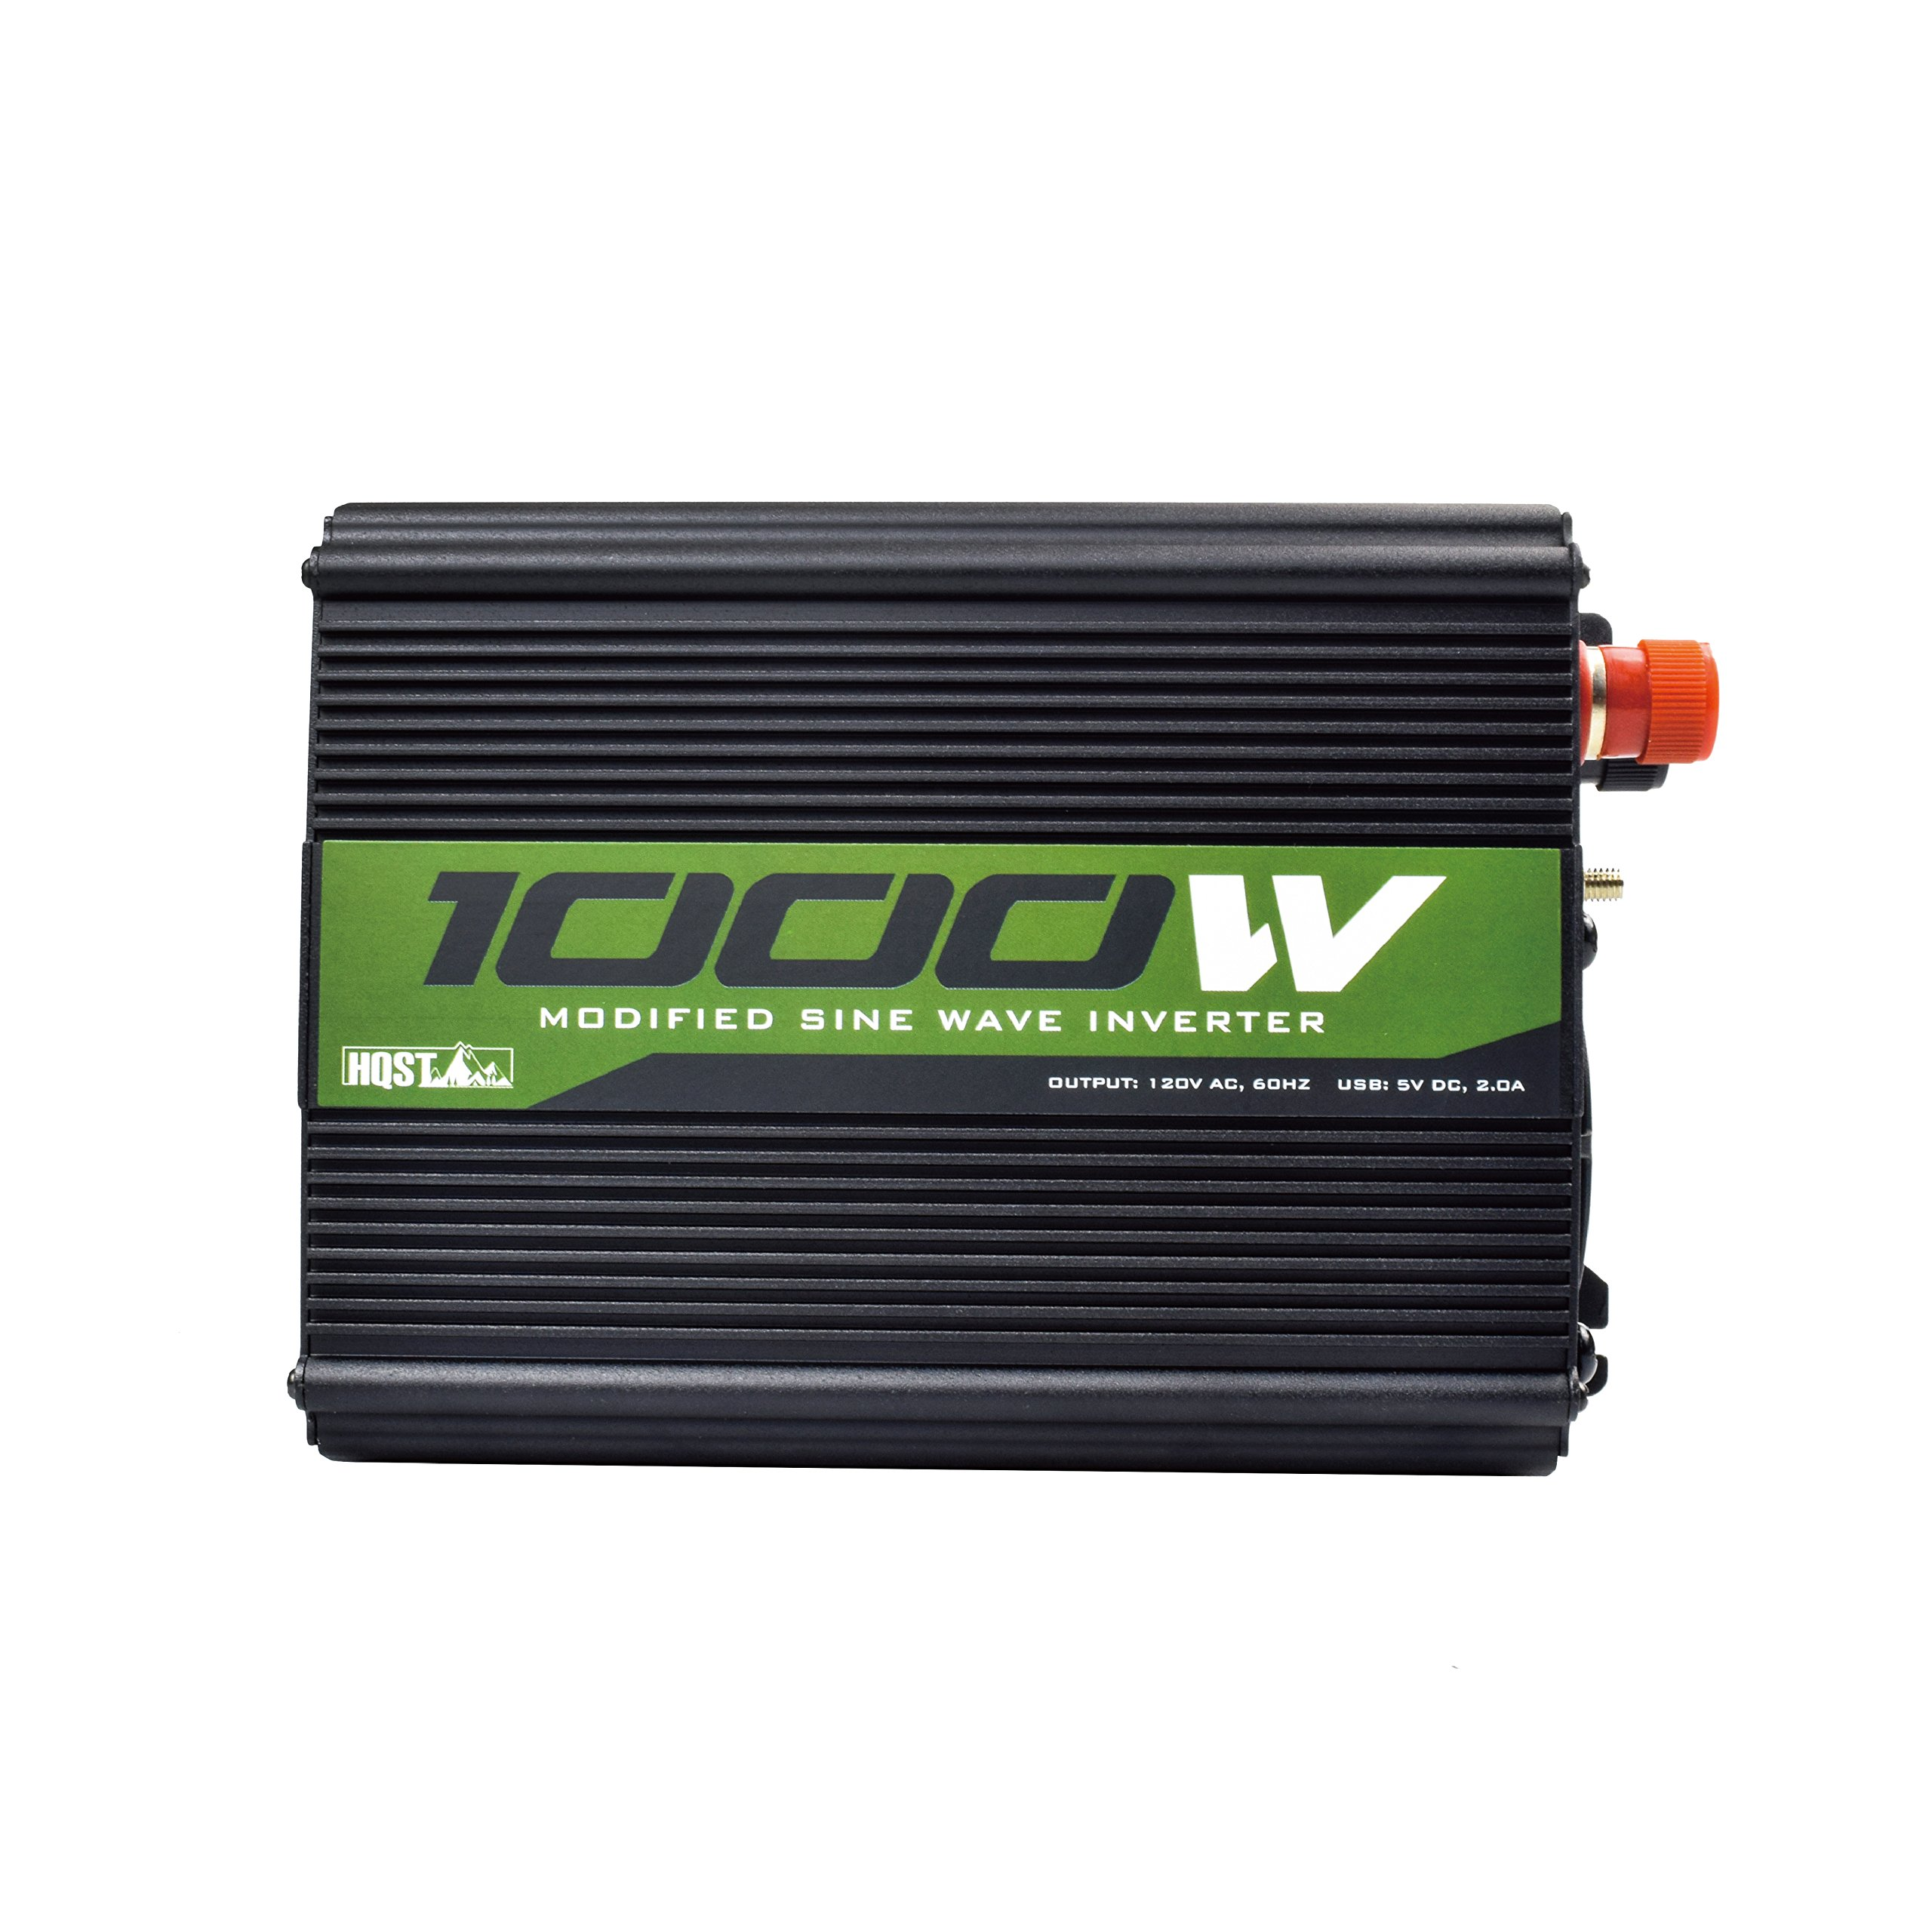 HQST 1000W Off-Grid Power Inverter 12V DC to 110V AC Modified Sine Wave Inverter Dual AC Outlets with USB Port and Cables